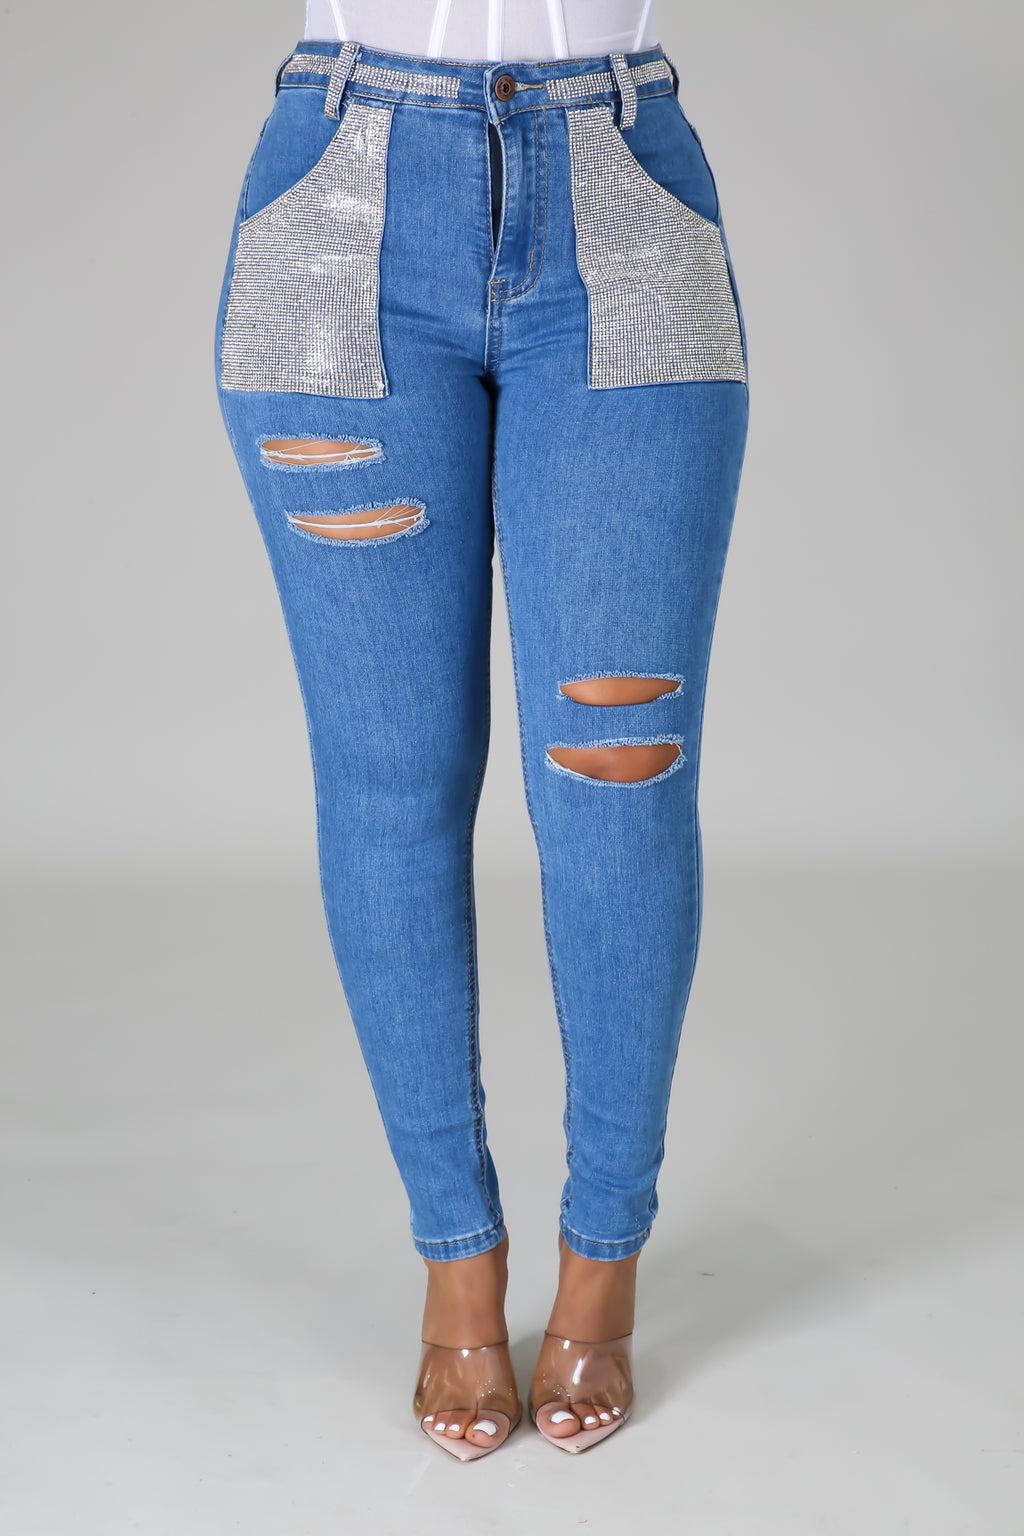 Shine Like Me Denim Pants